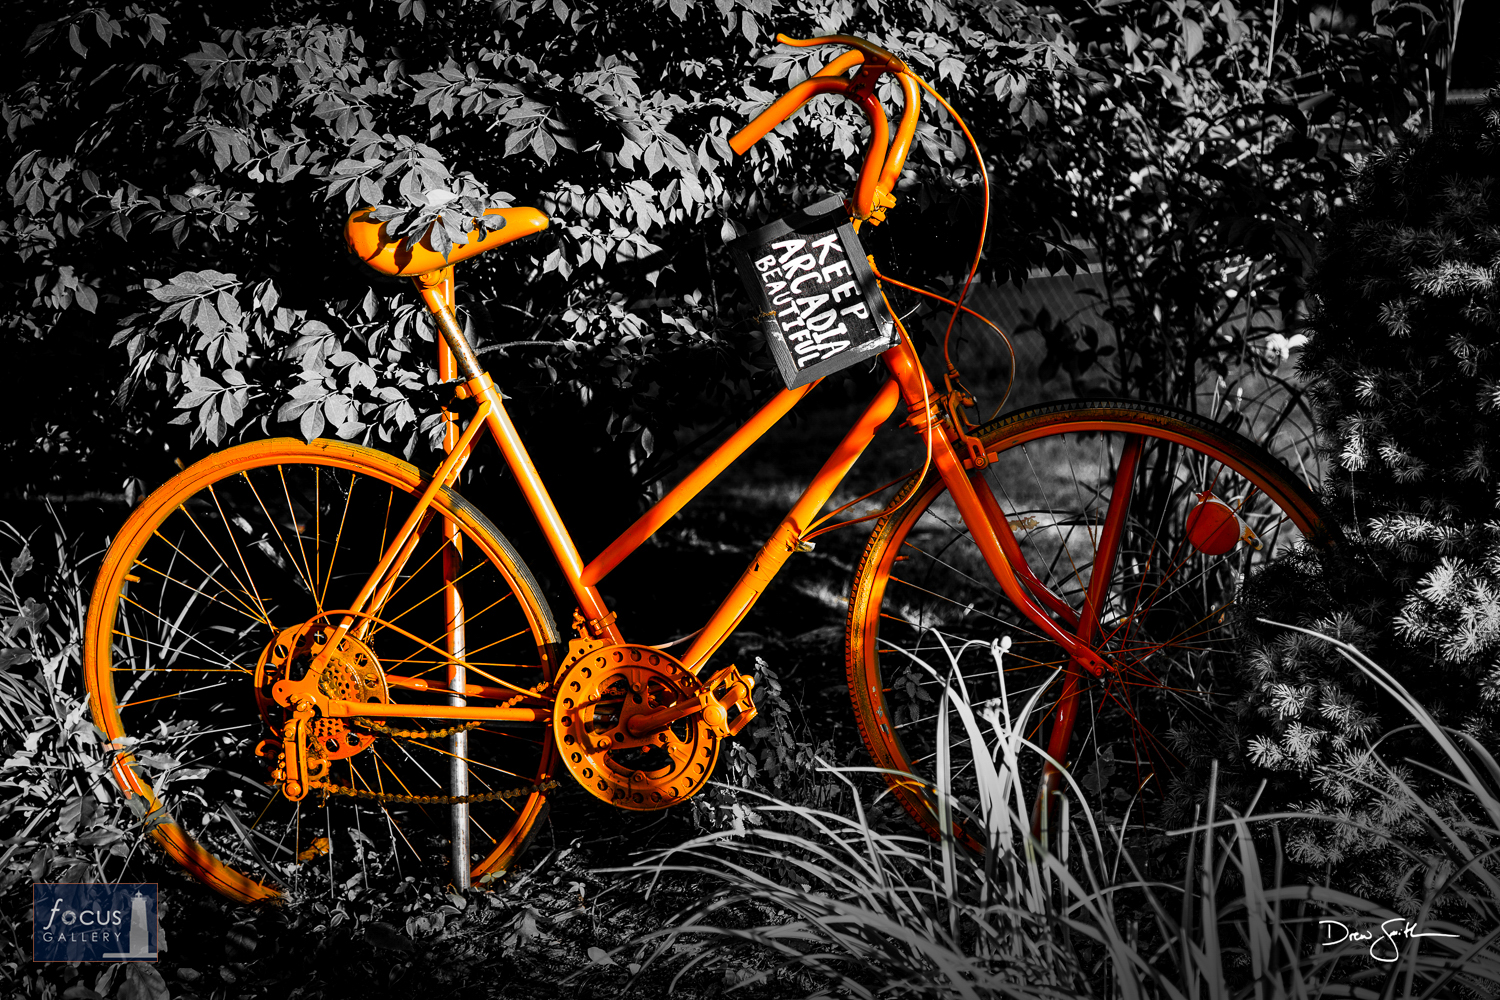 Photo © Drew Smith Bicycle sculpture in Arcadia, Michigan in selective color.